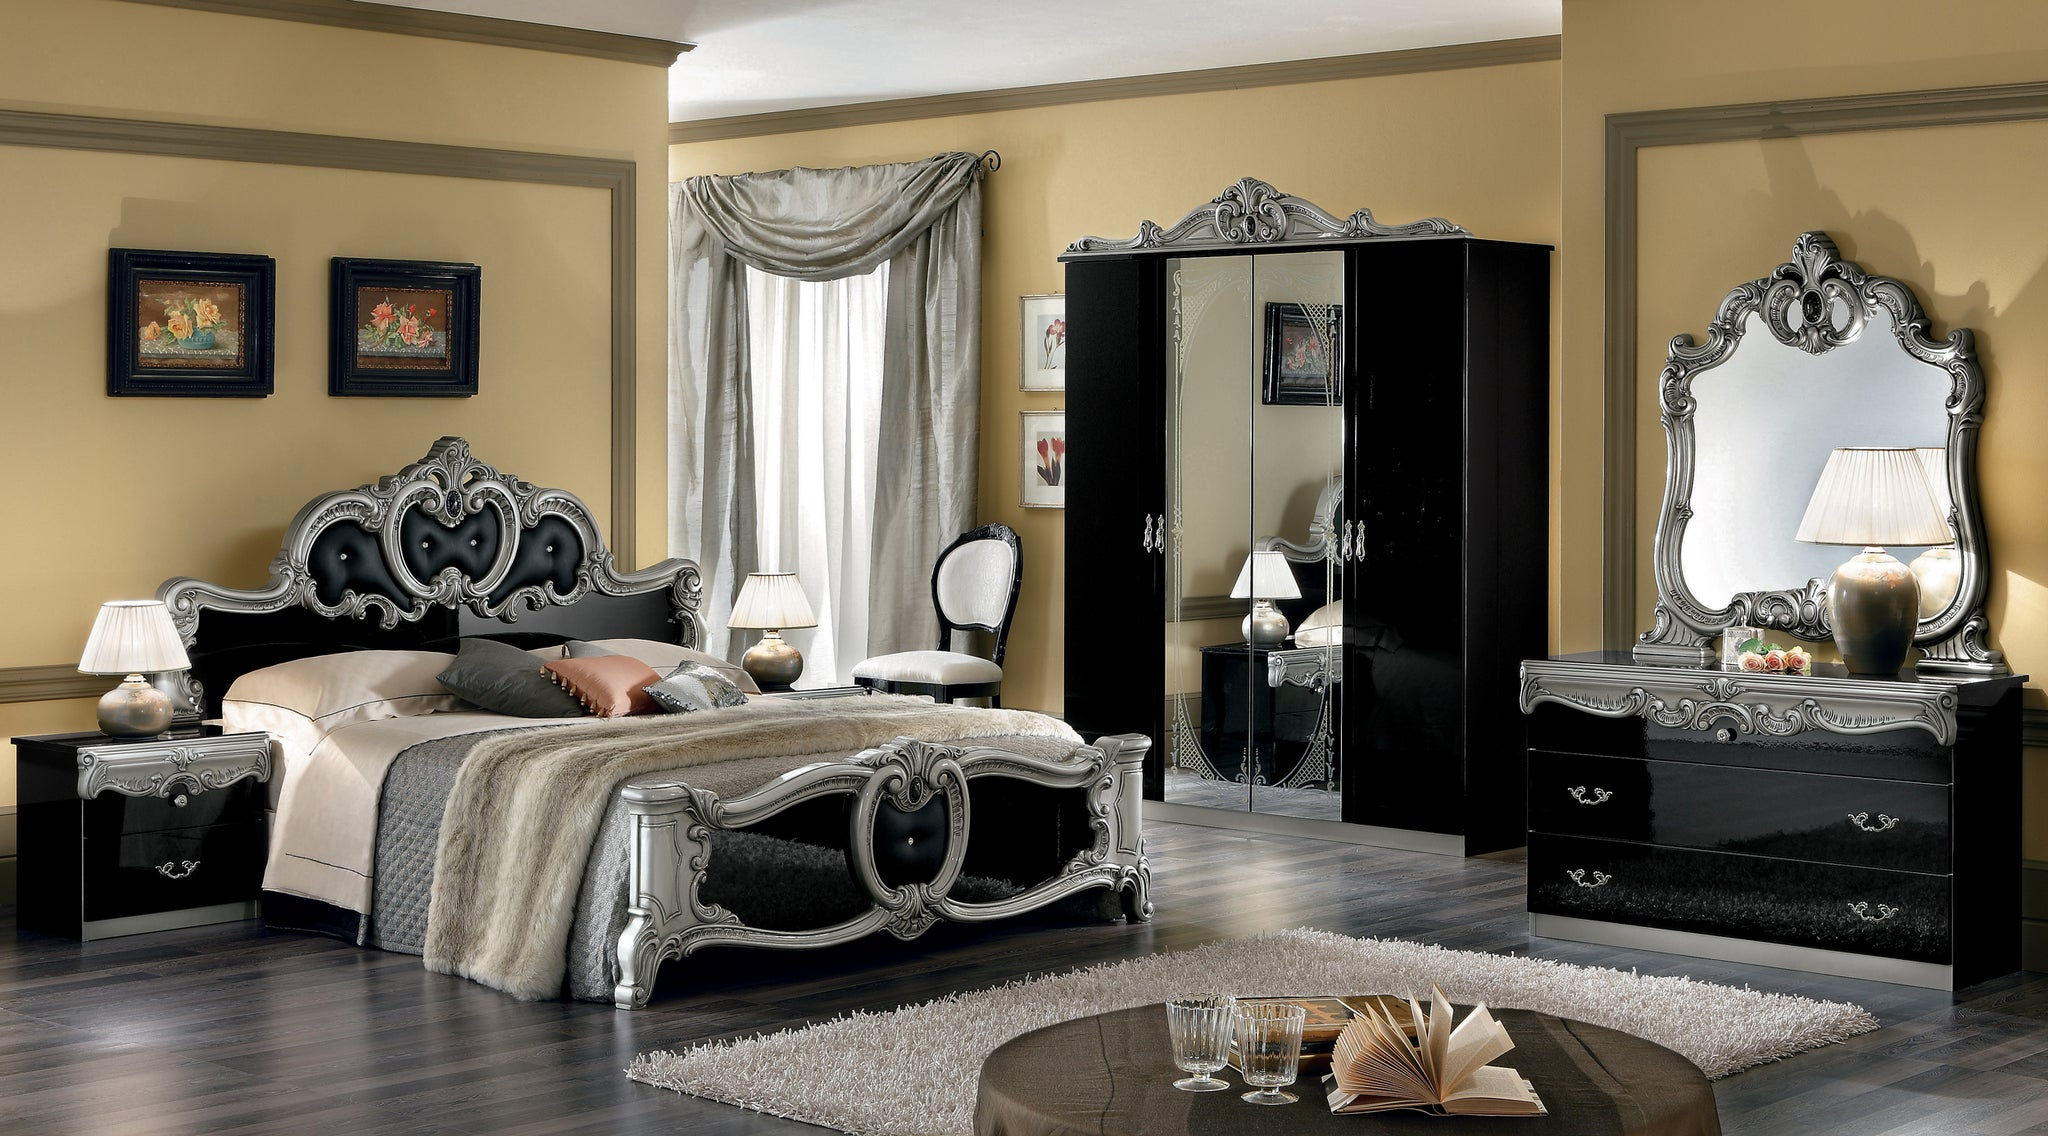 Coletti Black and Silver Bedroom Set – Furniture Design Centers on metallic silver bedroom, black and silver doors, black and silver car, black and silver comforter sets queen, black and silver boudoir, black and silver window, black and silver wallpaper, silver gray bedroom, black bedroom ideas, black bedrooms for girls, black and silver lounge, silver master bedroom, black and silver room, black and silver curtains, black and silver bathroom, black and silver hardware, black purple silver bedrooms, black and silver bookcases, gray and purple girls bedroom, modern silver bedroom,